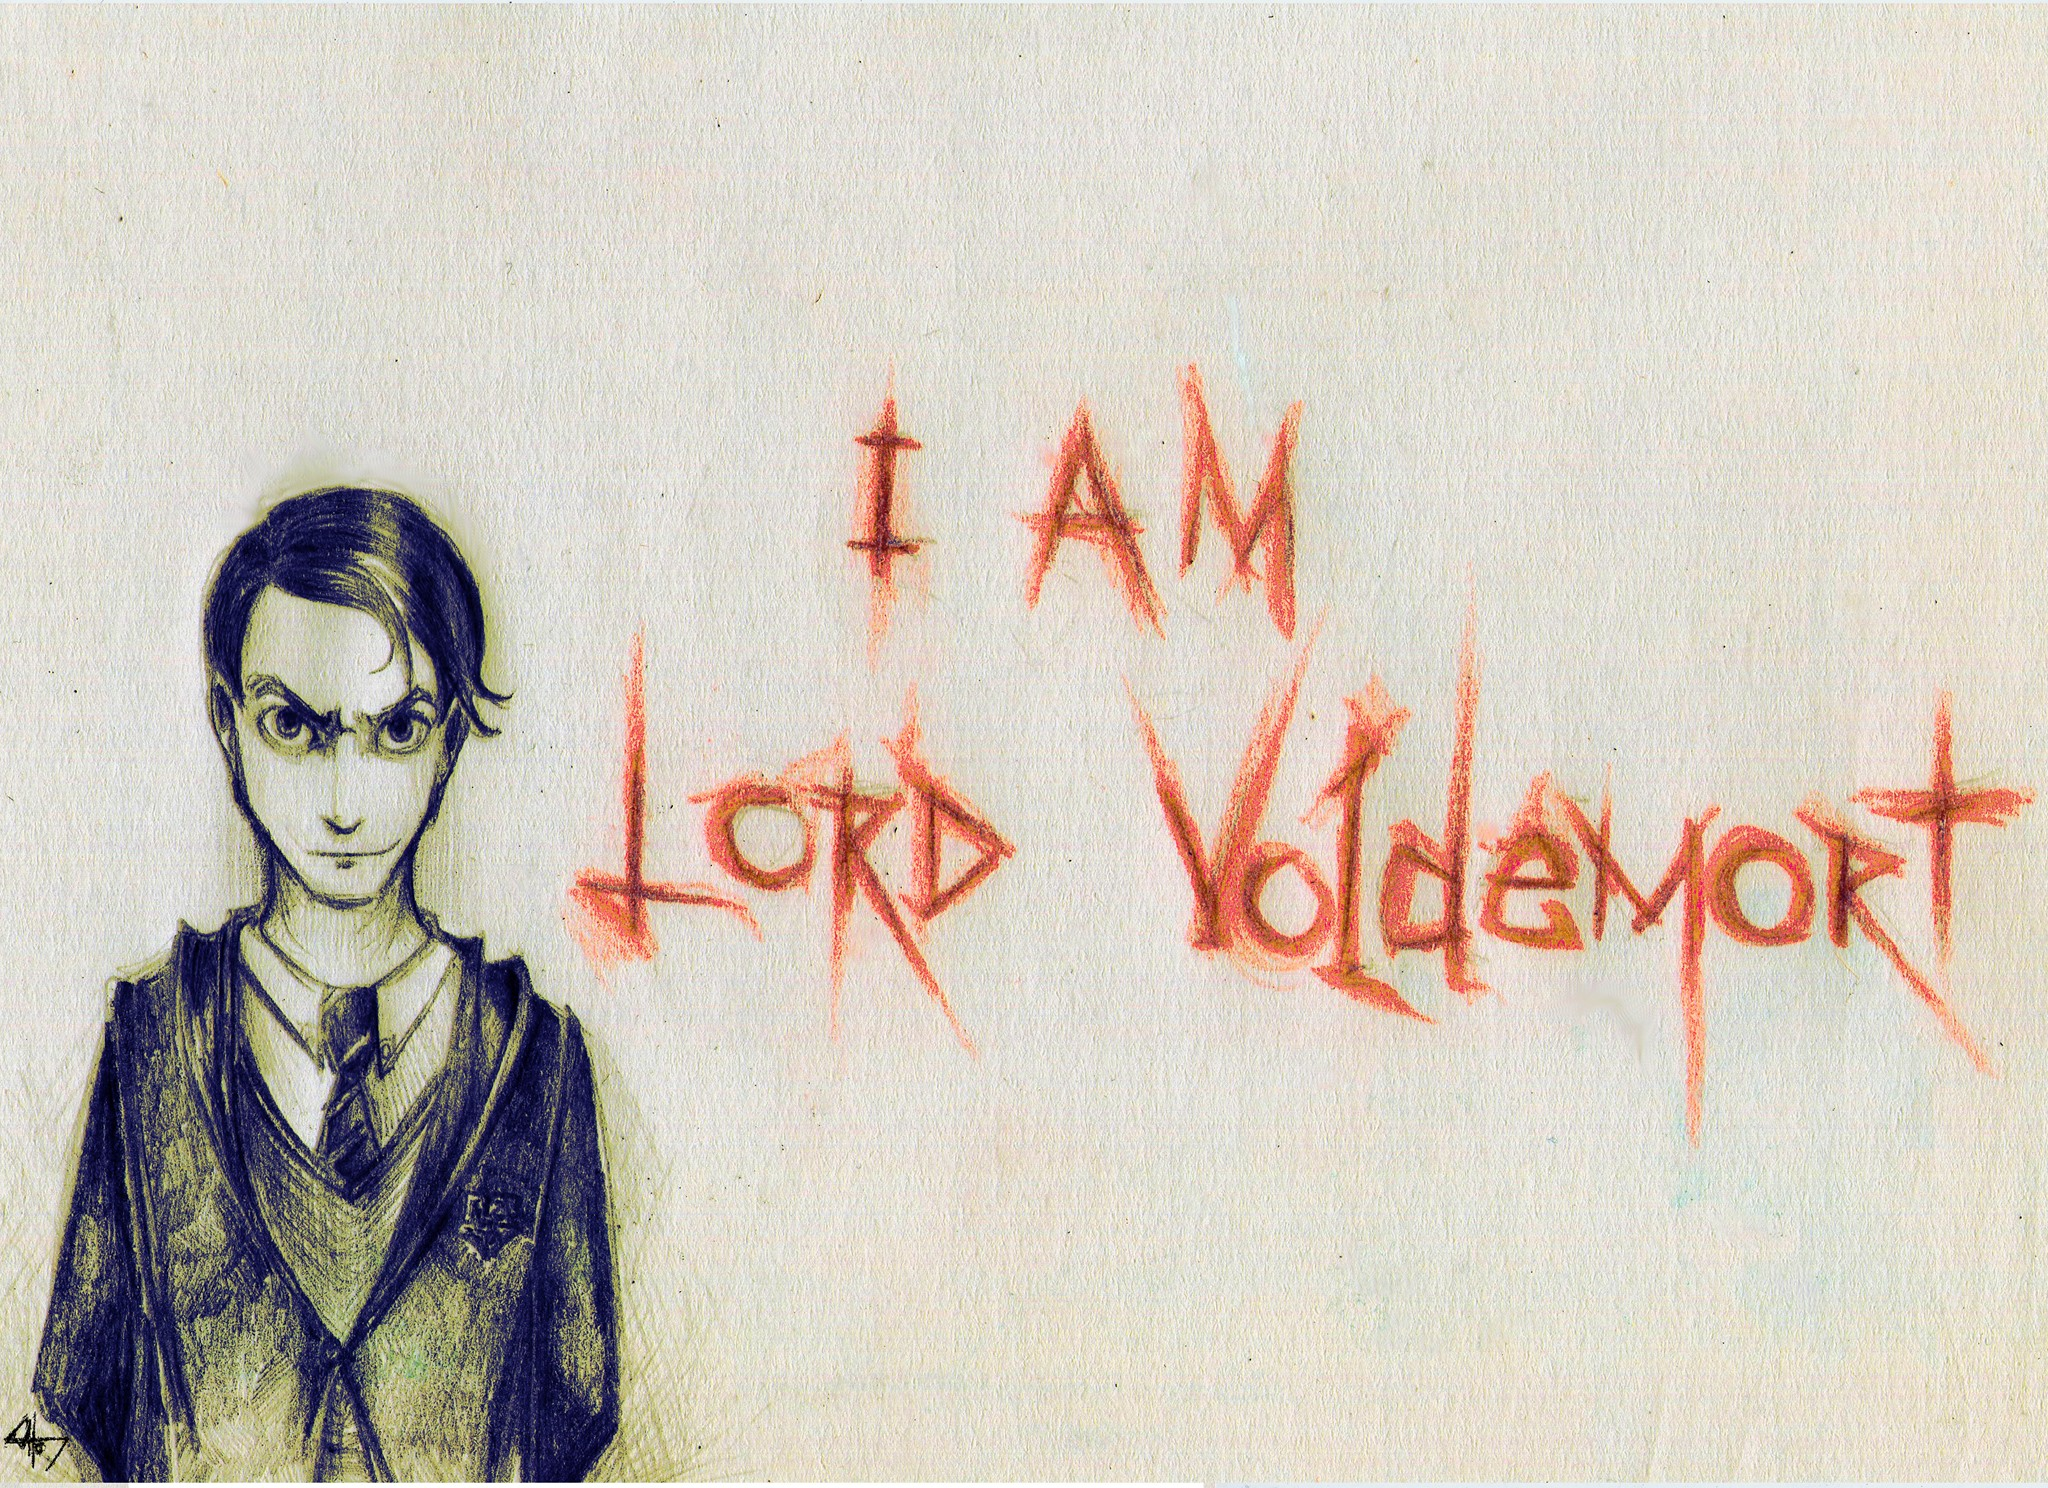 i-am-lord-voldemort